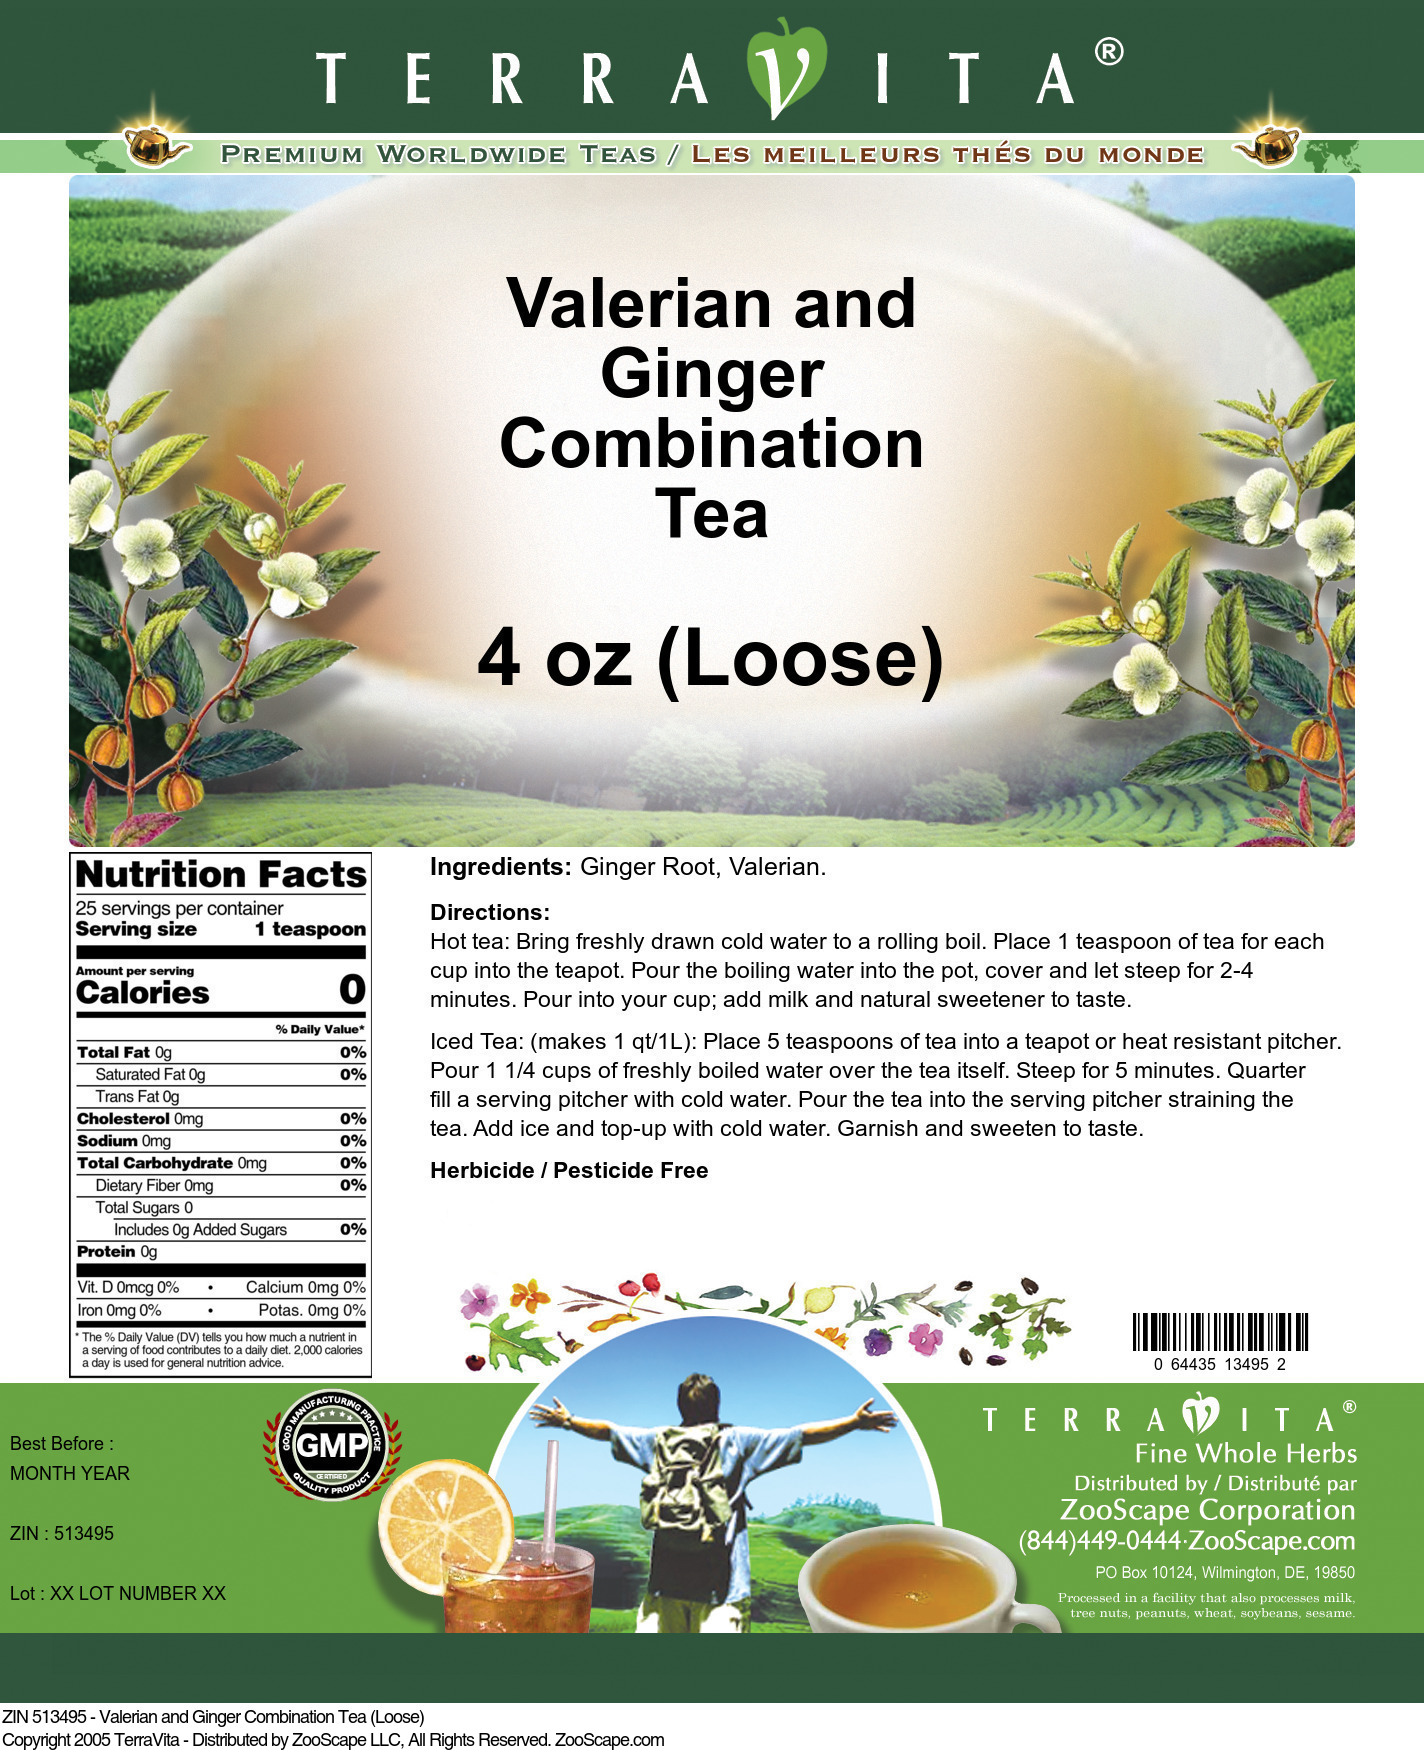 Valerian and Ginger Combination Tea (Loose)